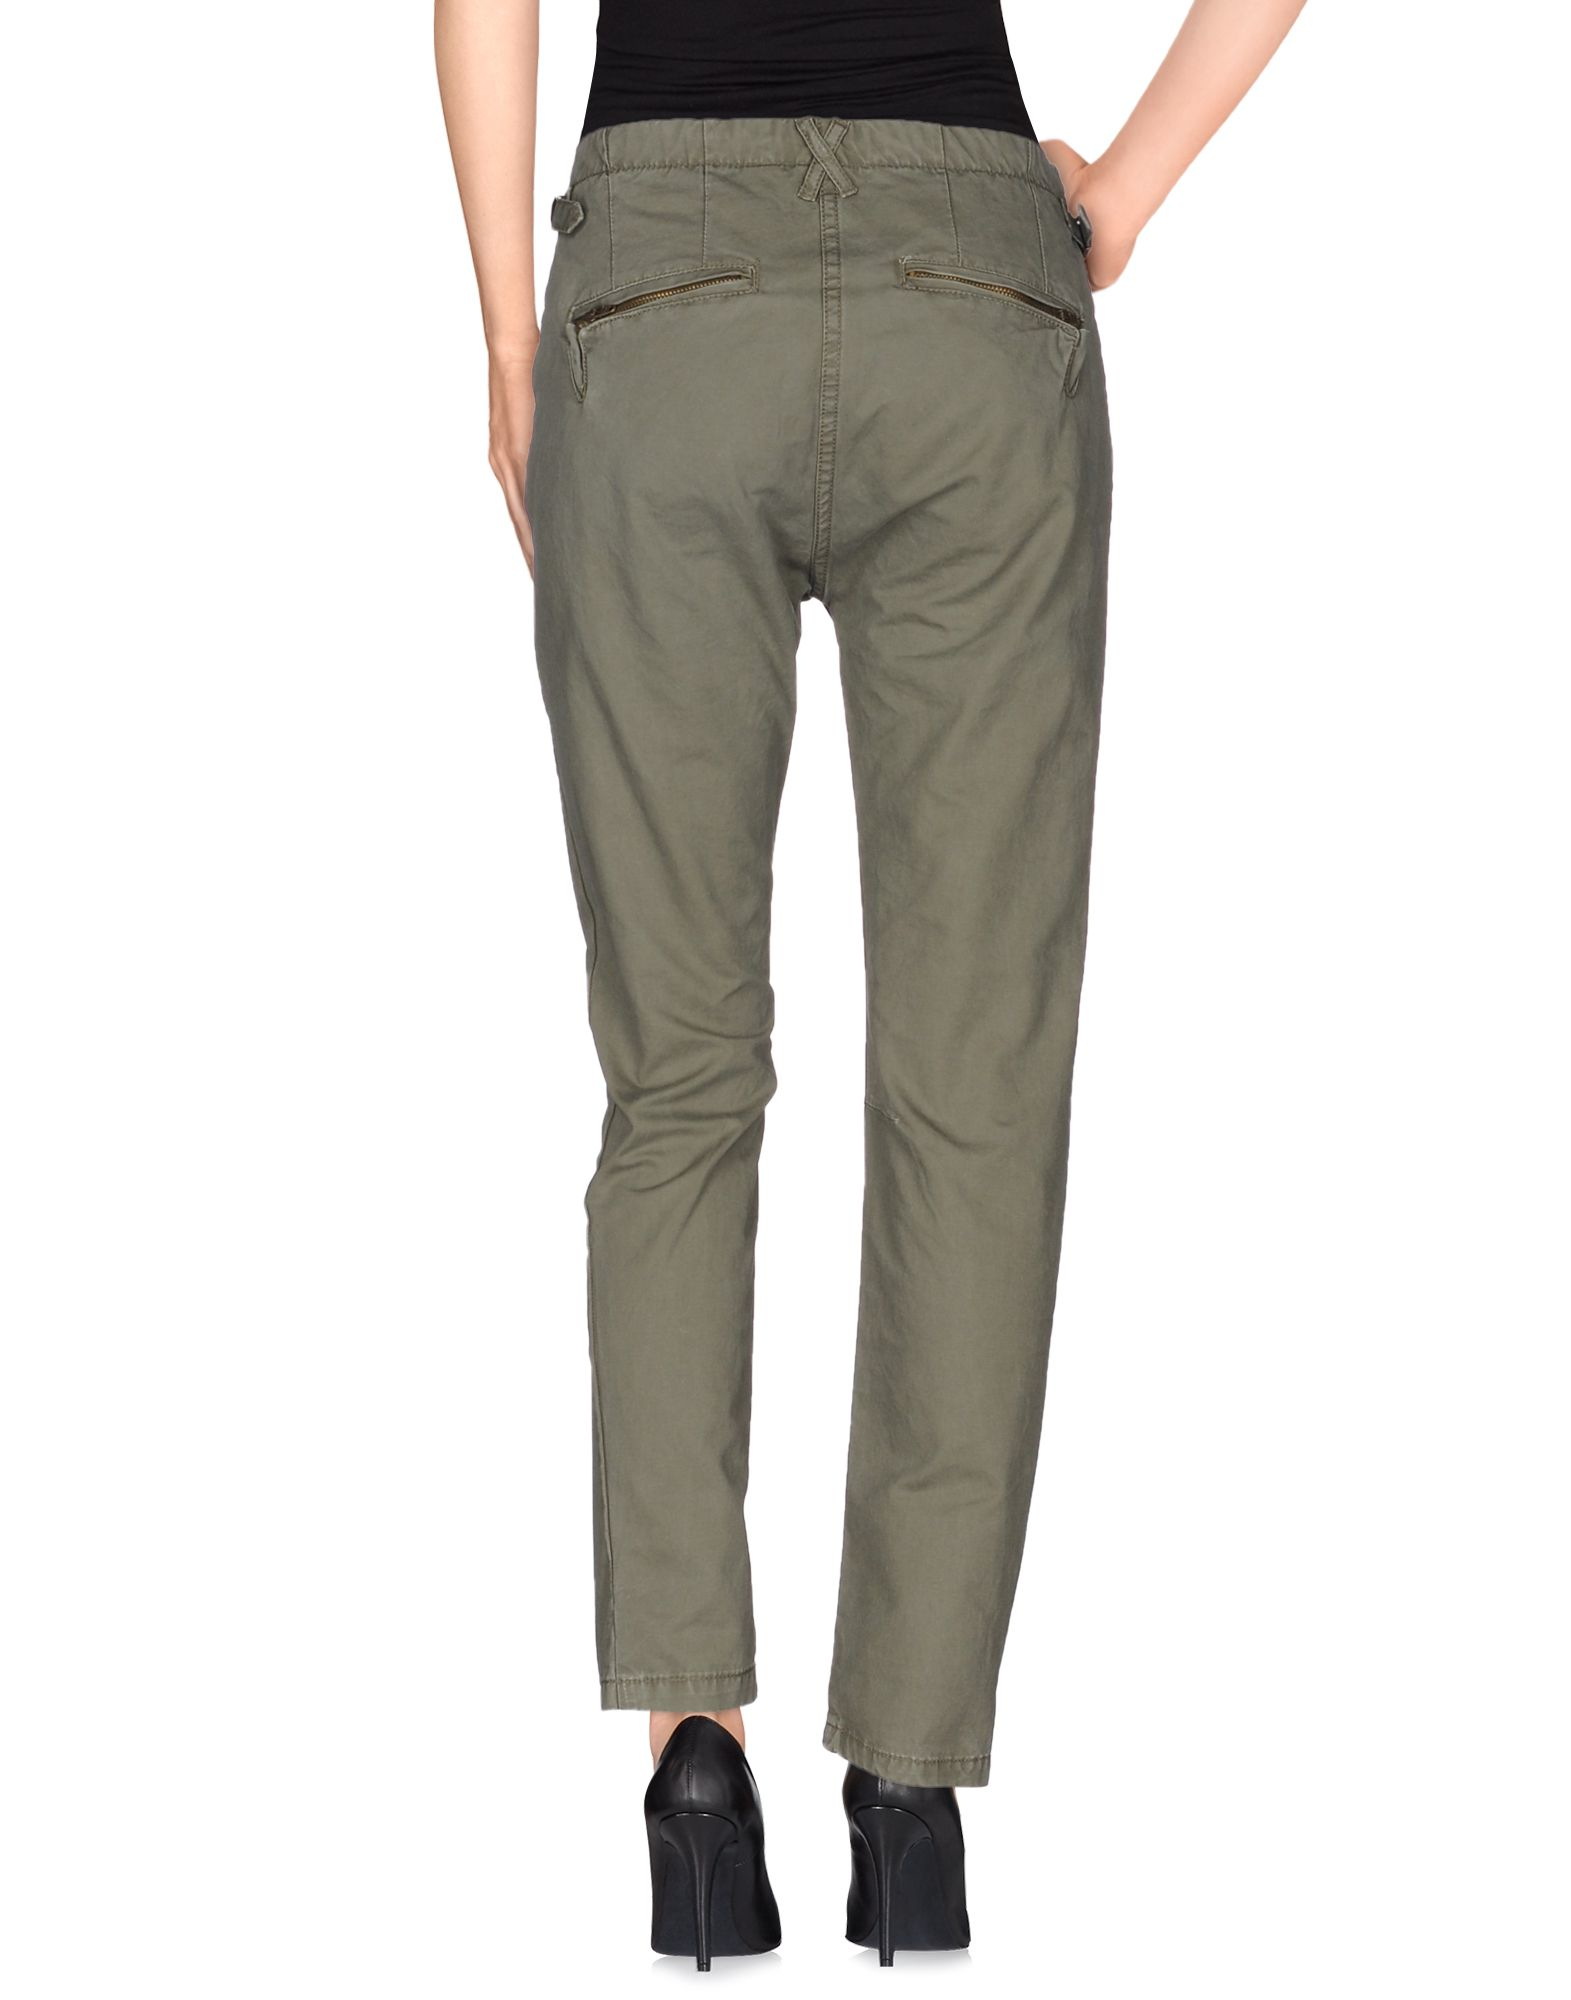 Lyst maison scotch casual trouser in green for About maison scotch